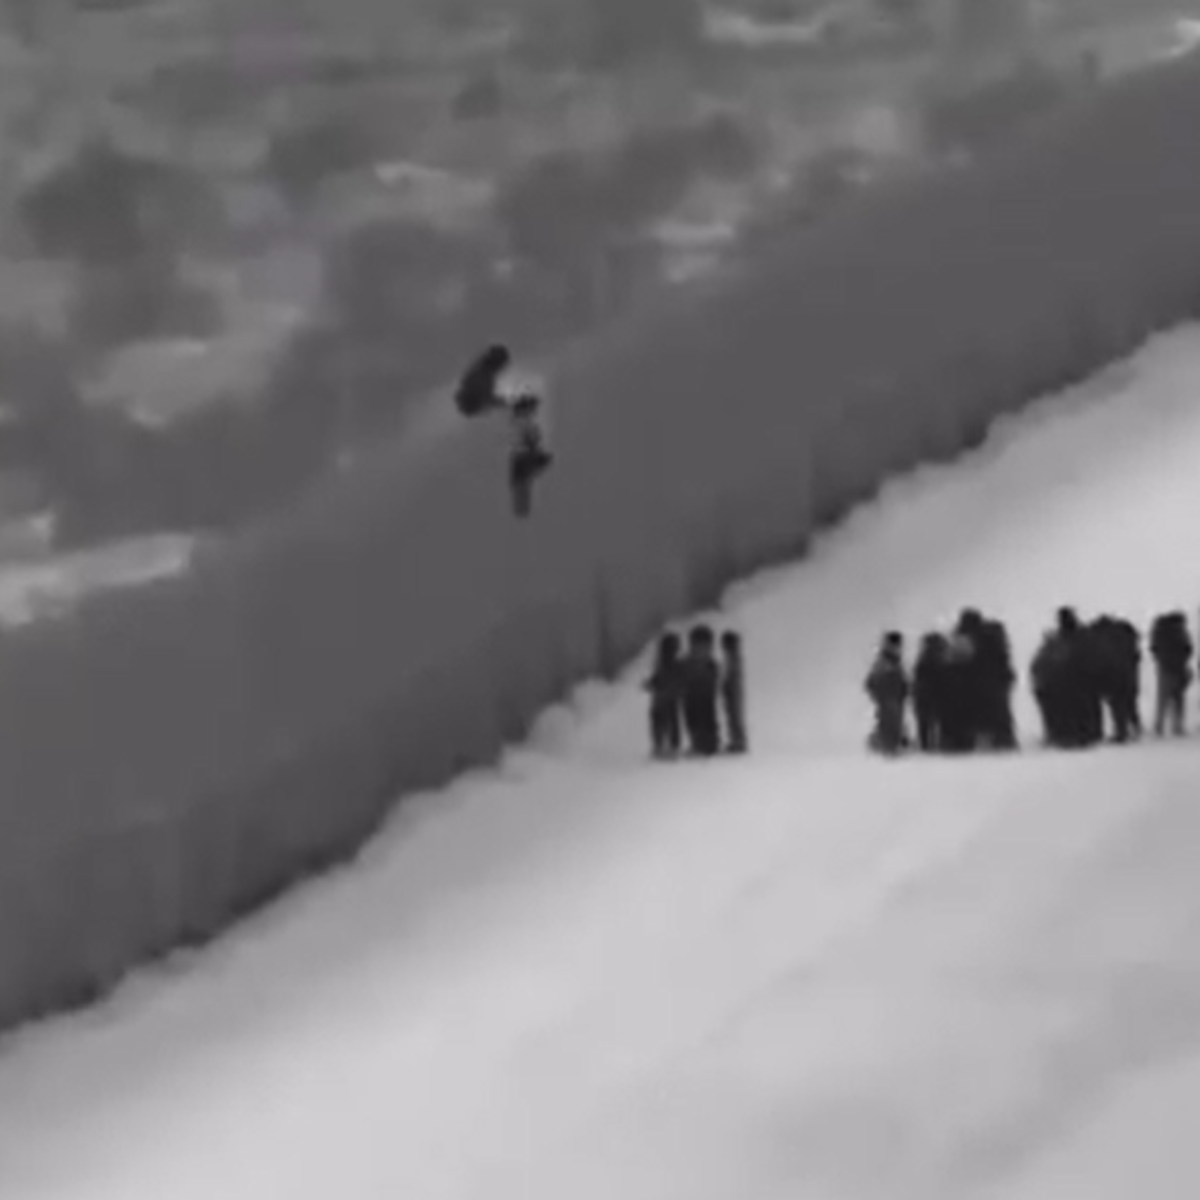 Watch 110 Migrants Use Ladder To Scale Border Wall In Arizona